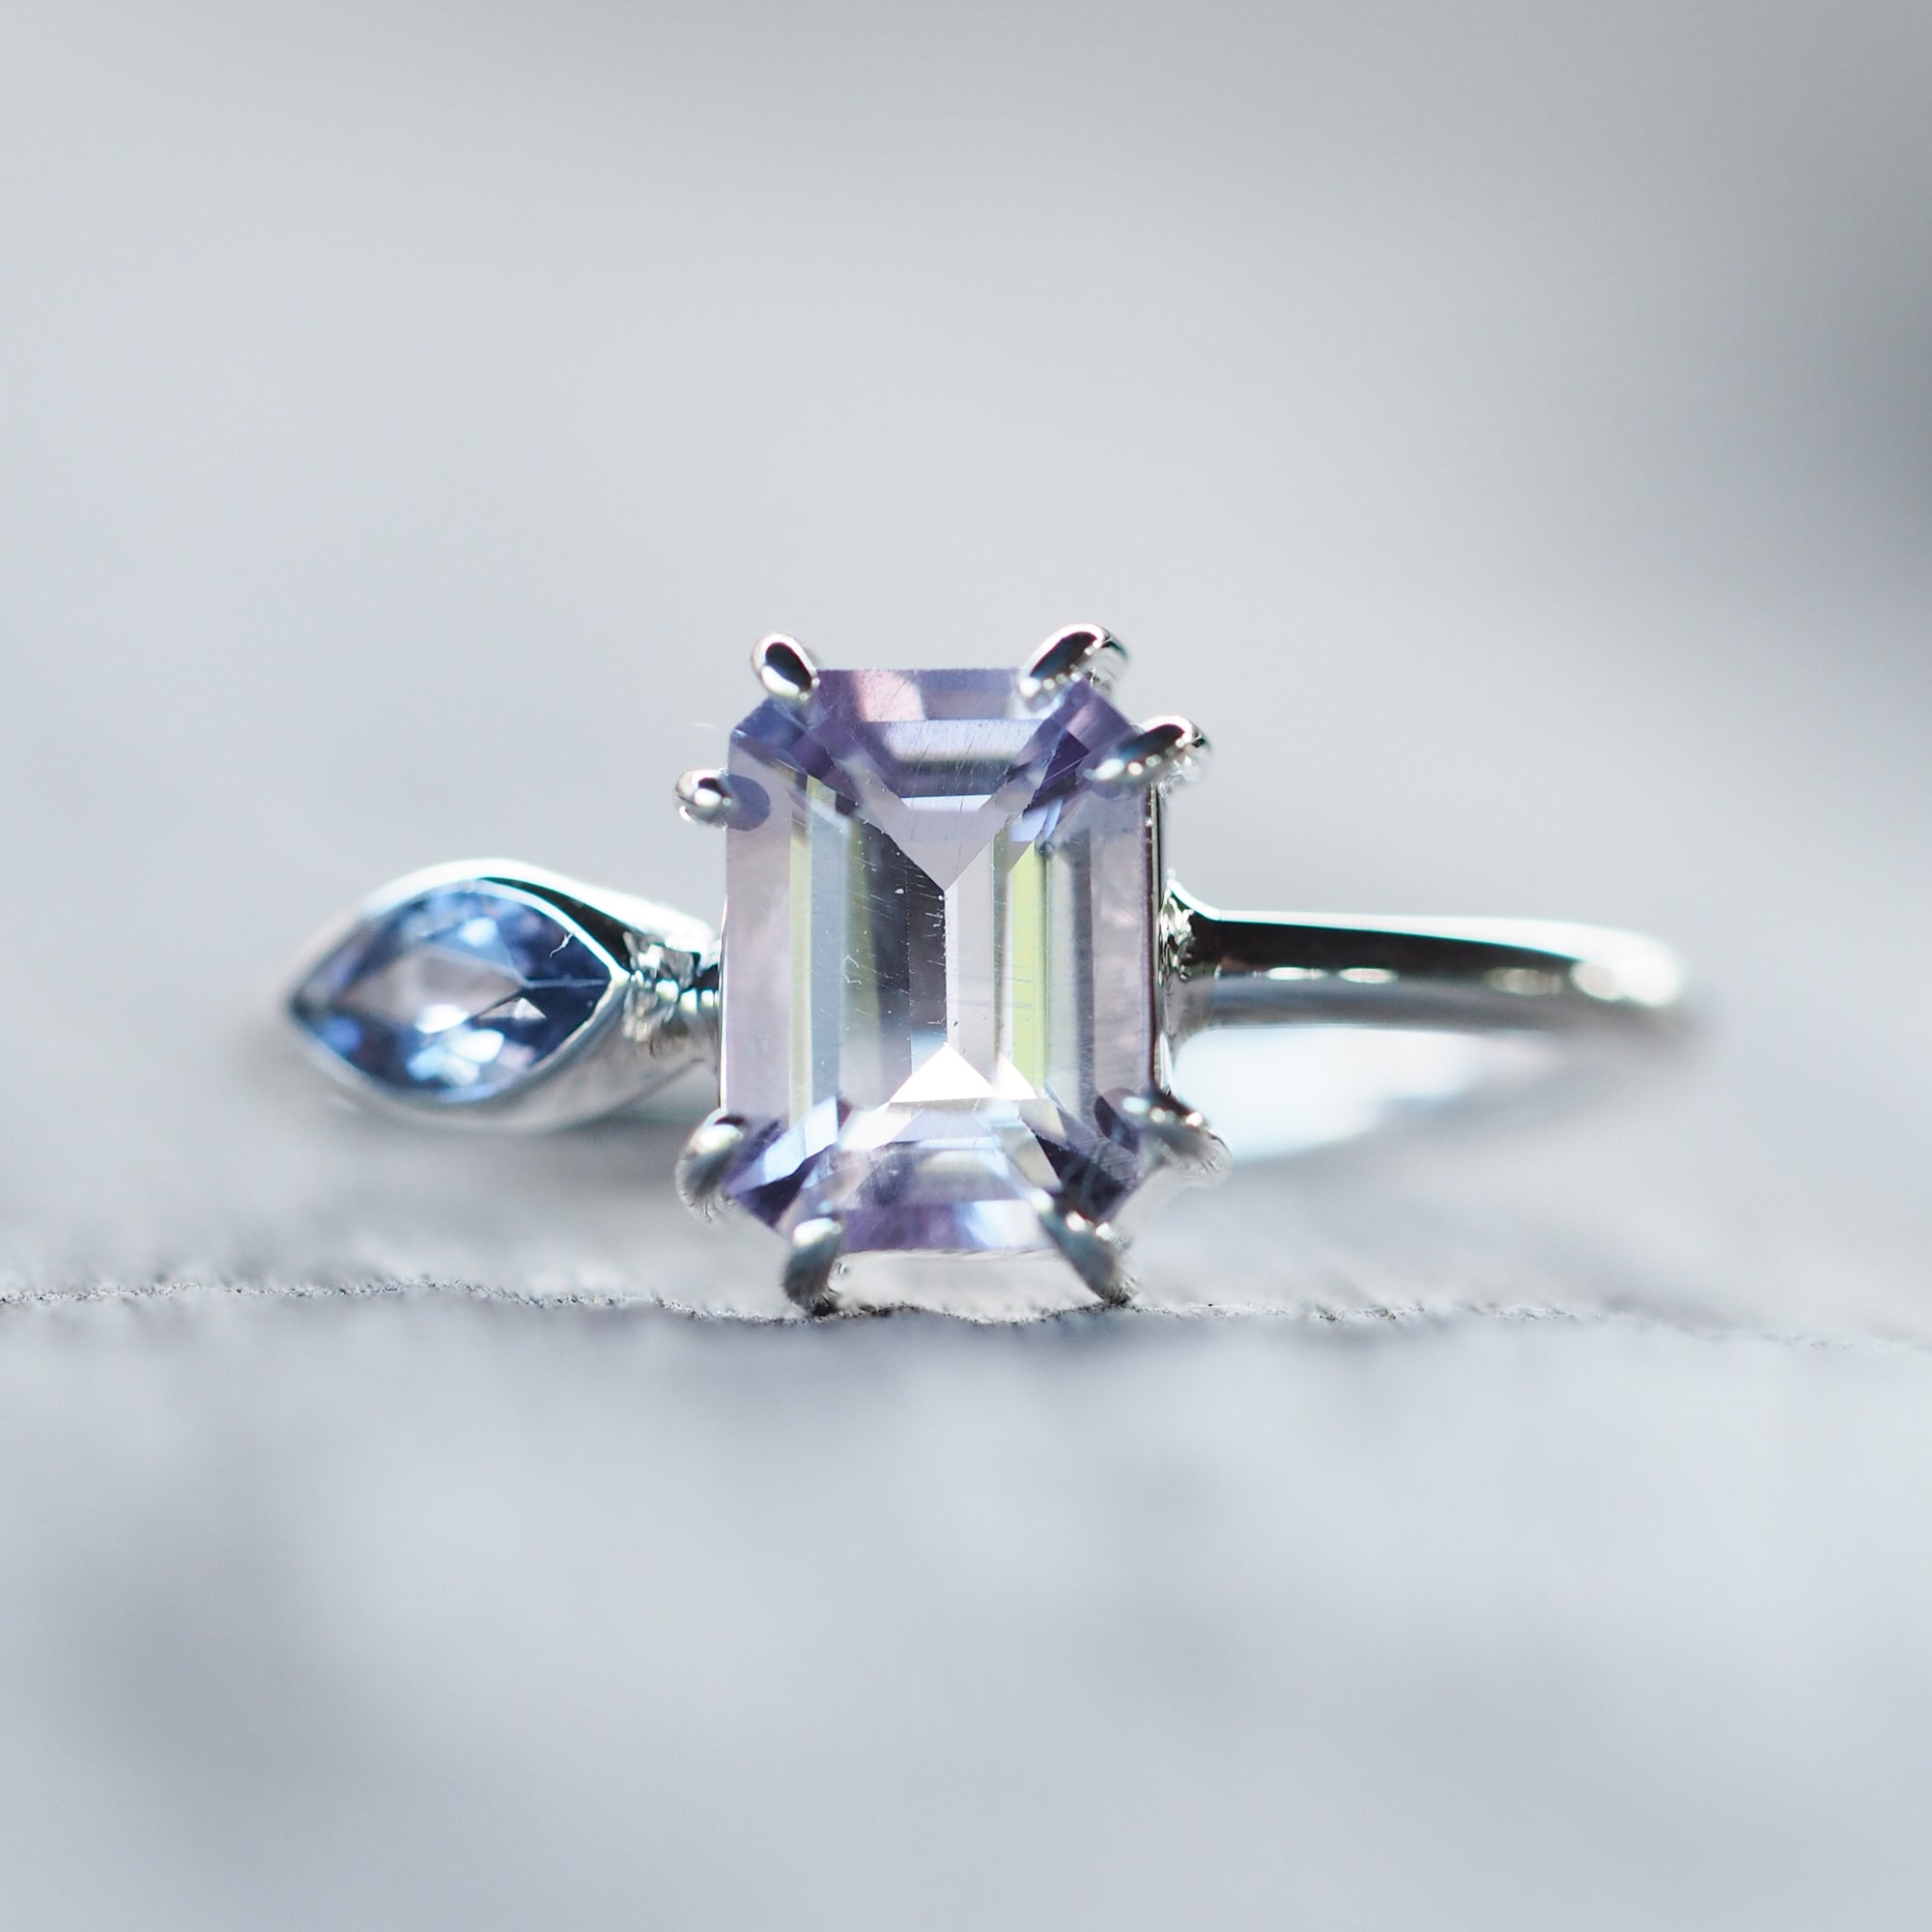 Octagonal Amethyst and Marquise Cut Iolite